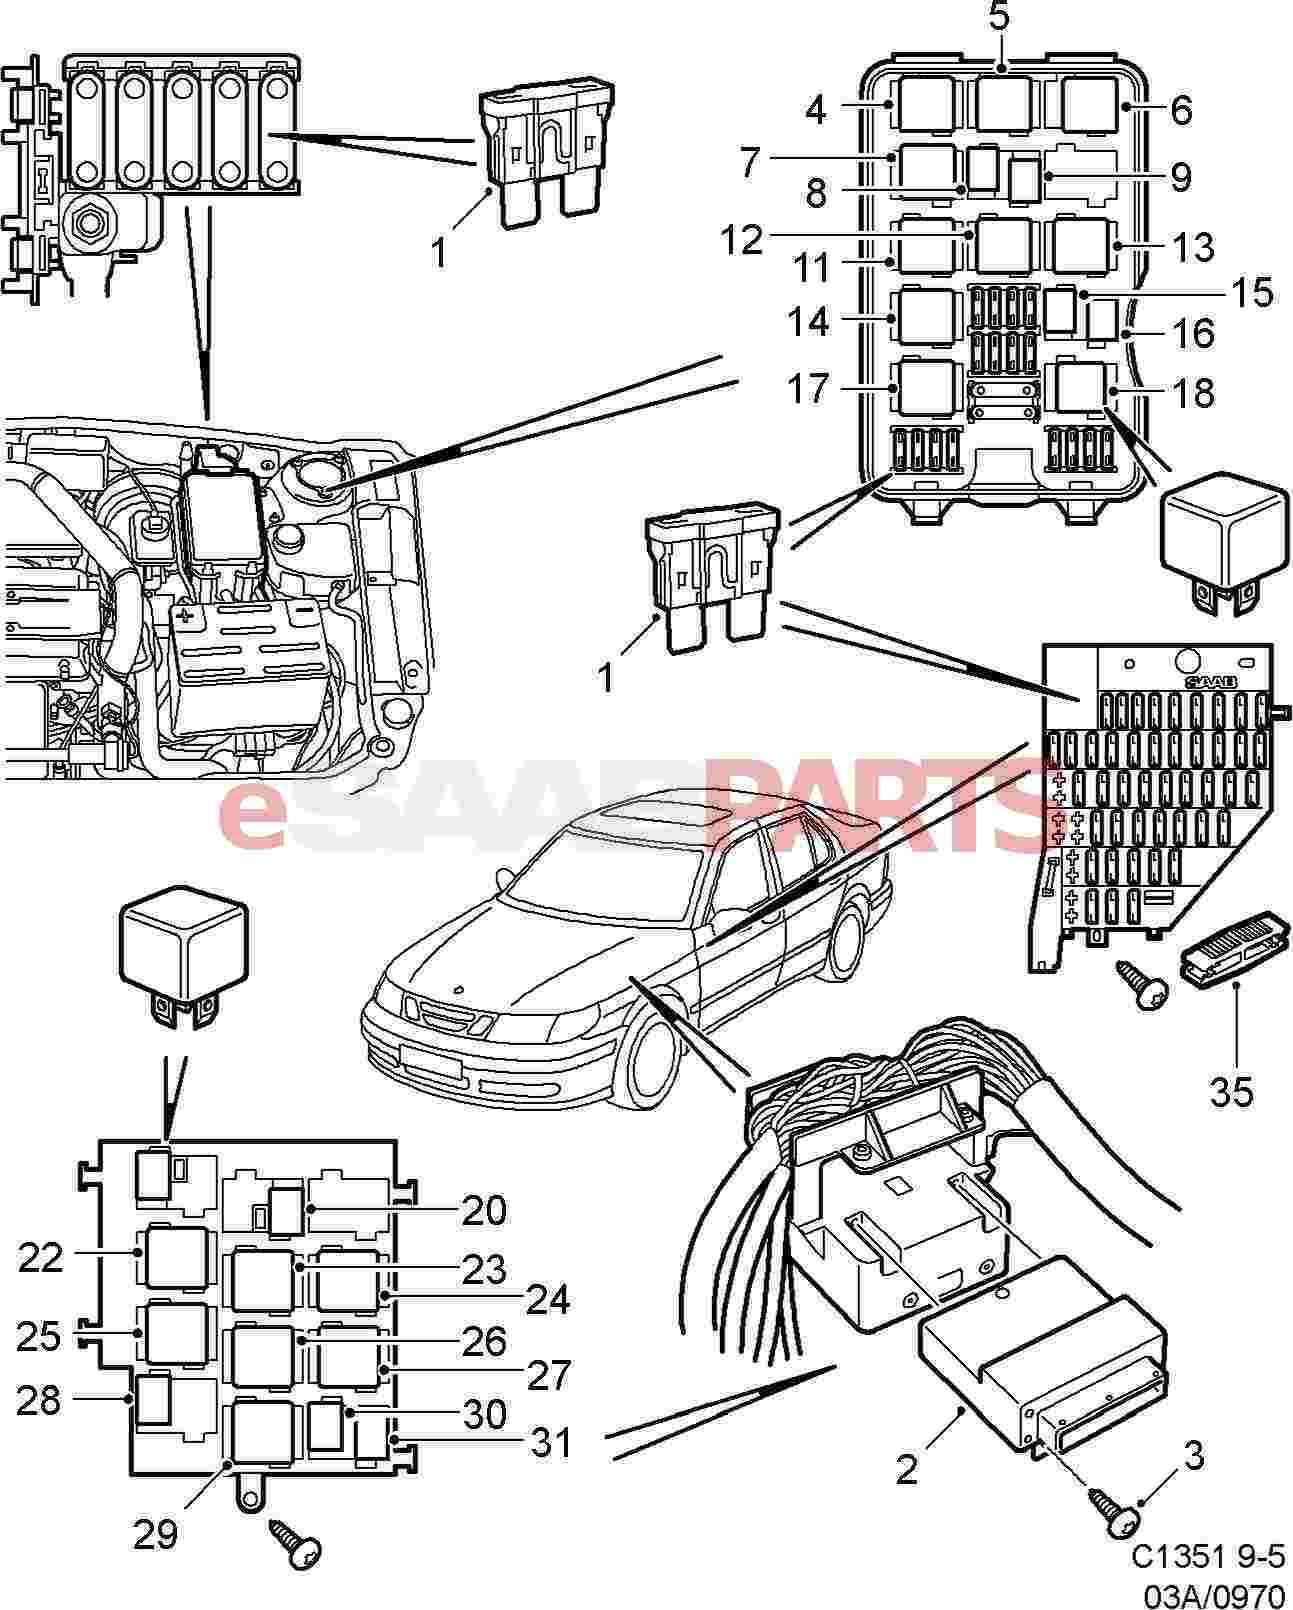 hight resolution of  2005 saab 9 3 fuse box wiring diagram and fuse box